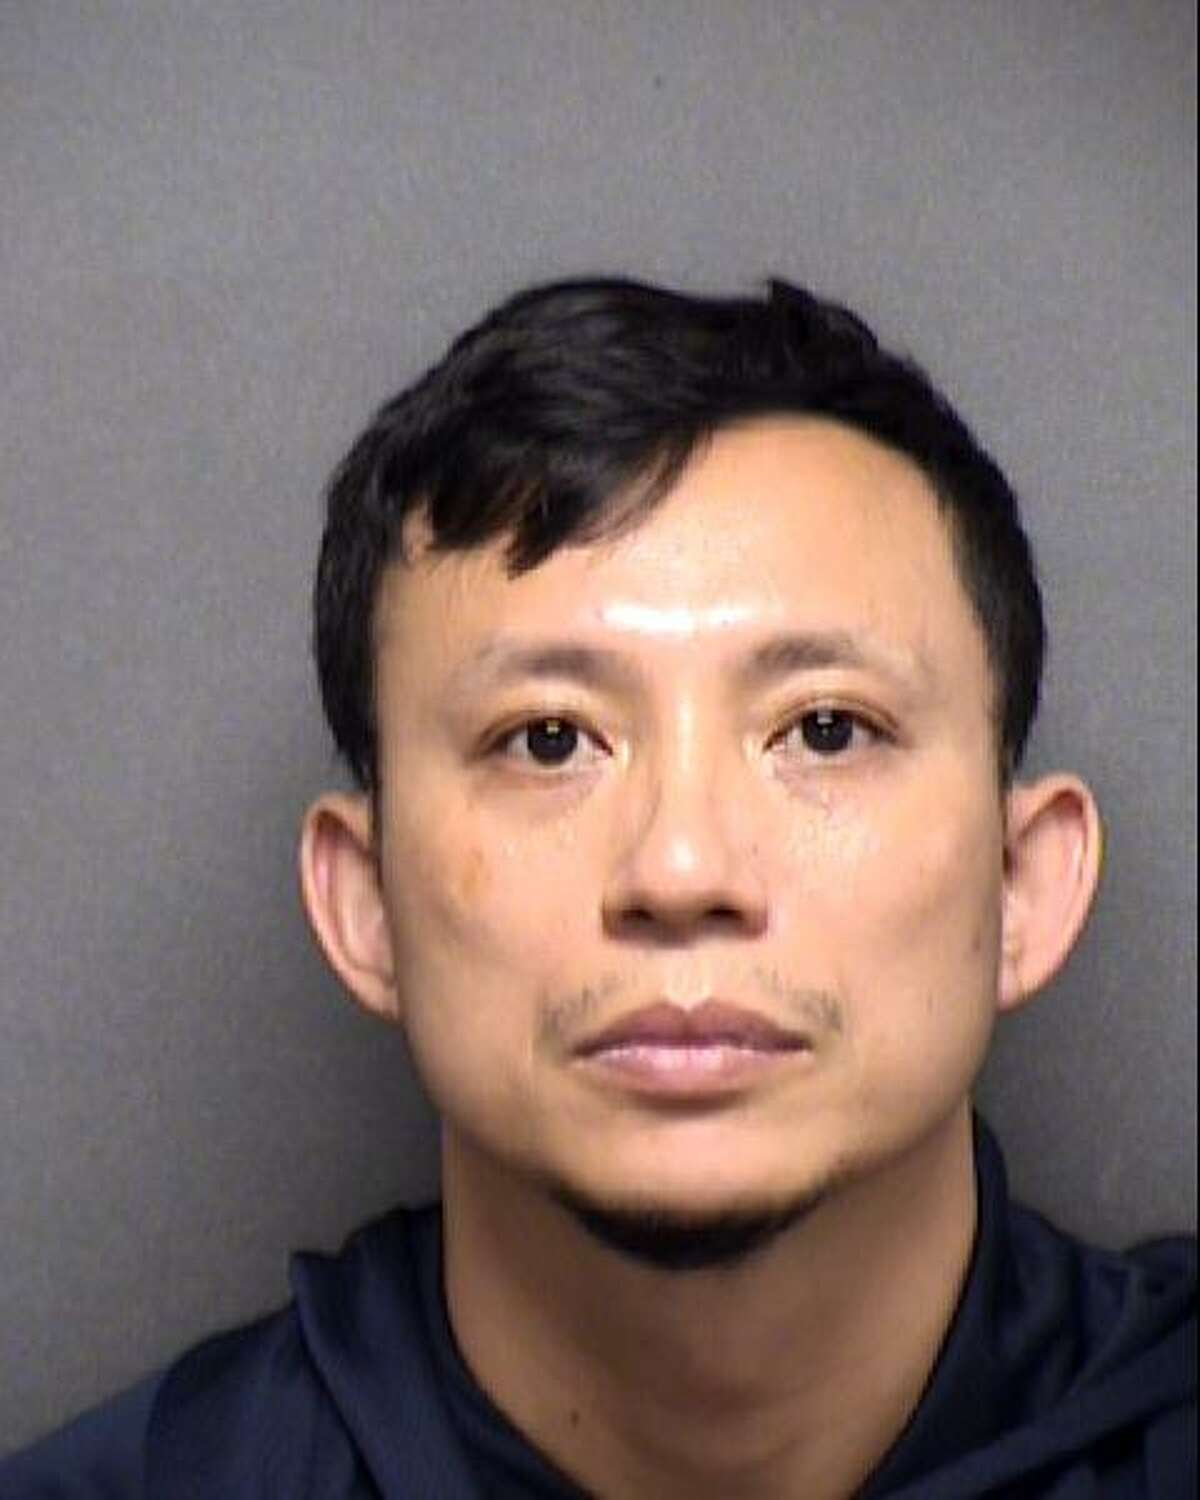 Kiet Nguyen has been charged with murder and aggravated assault with a deadly weapon.